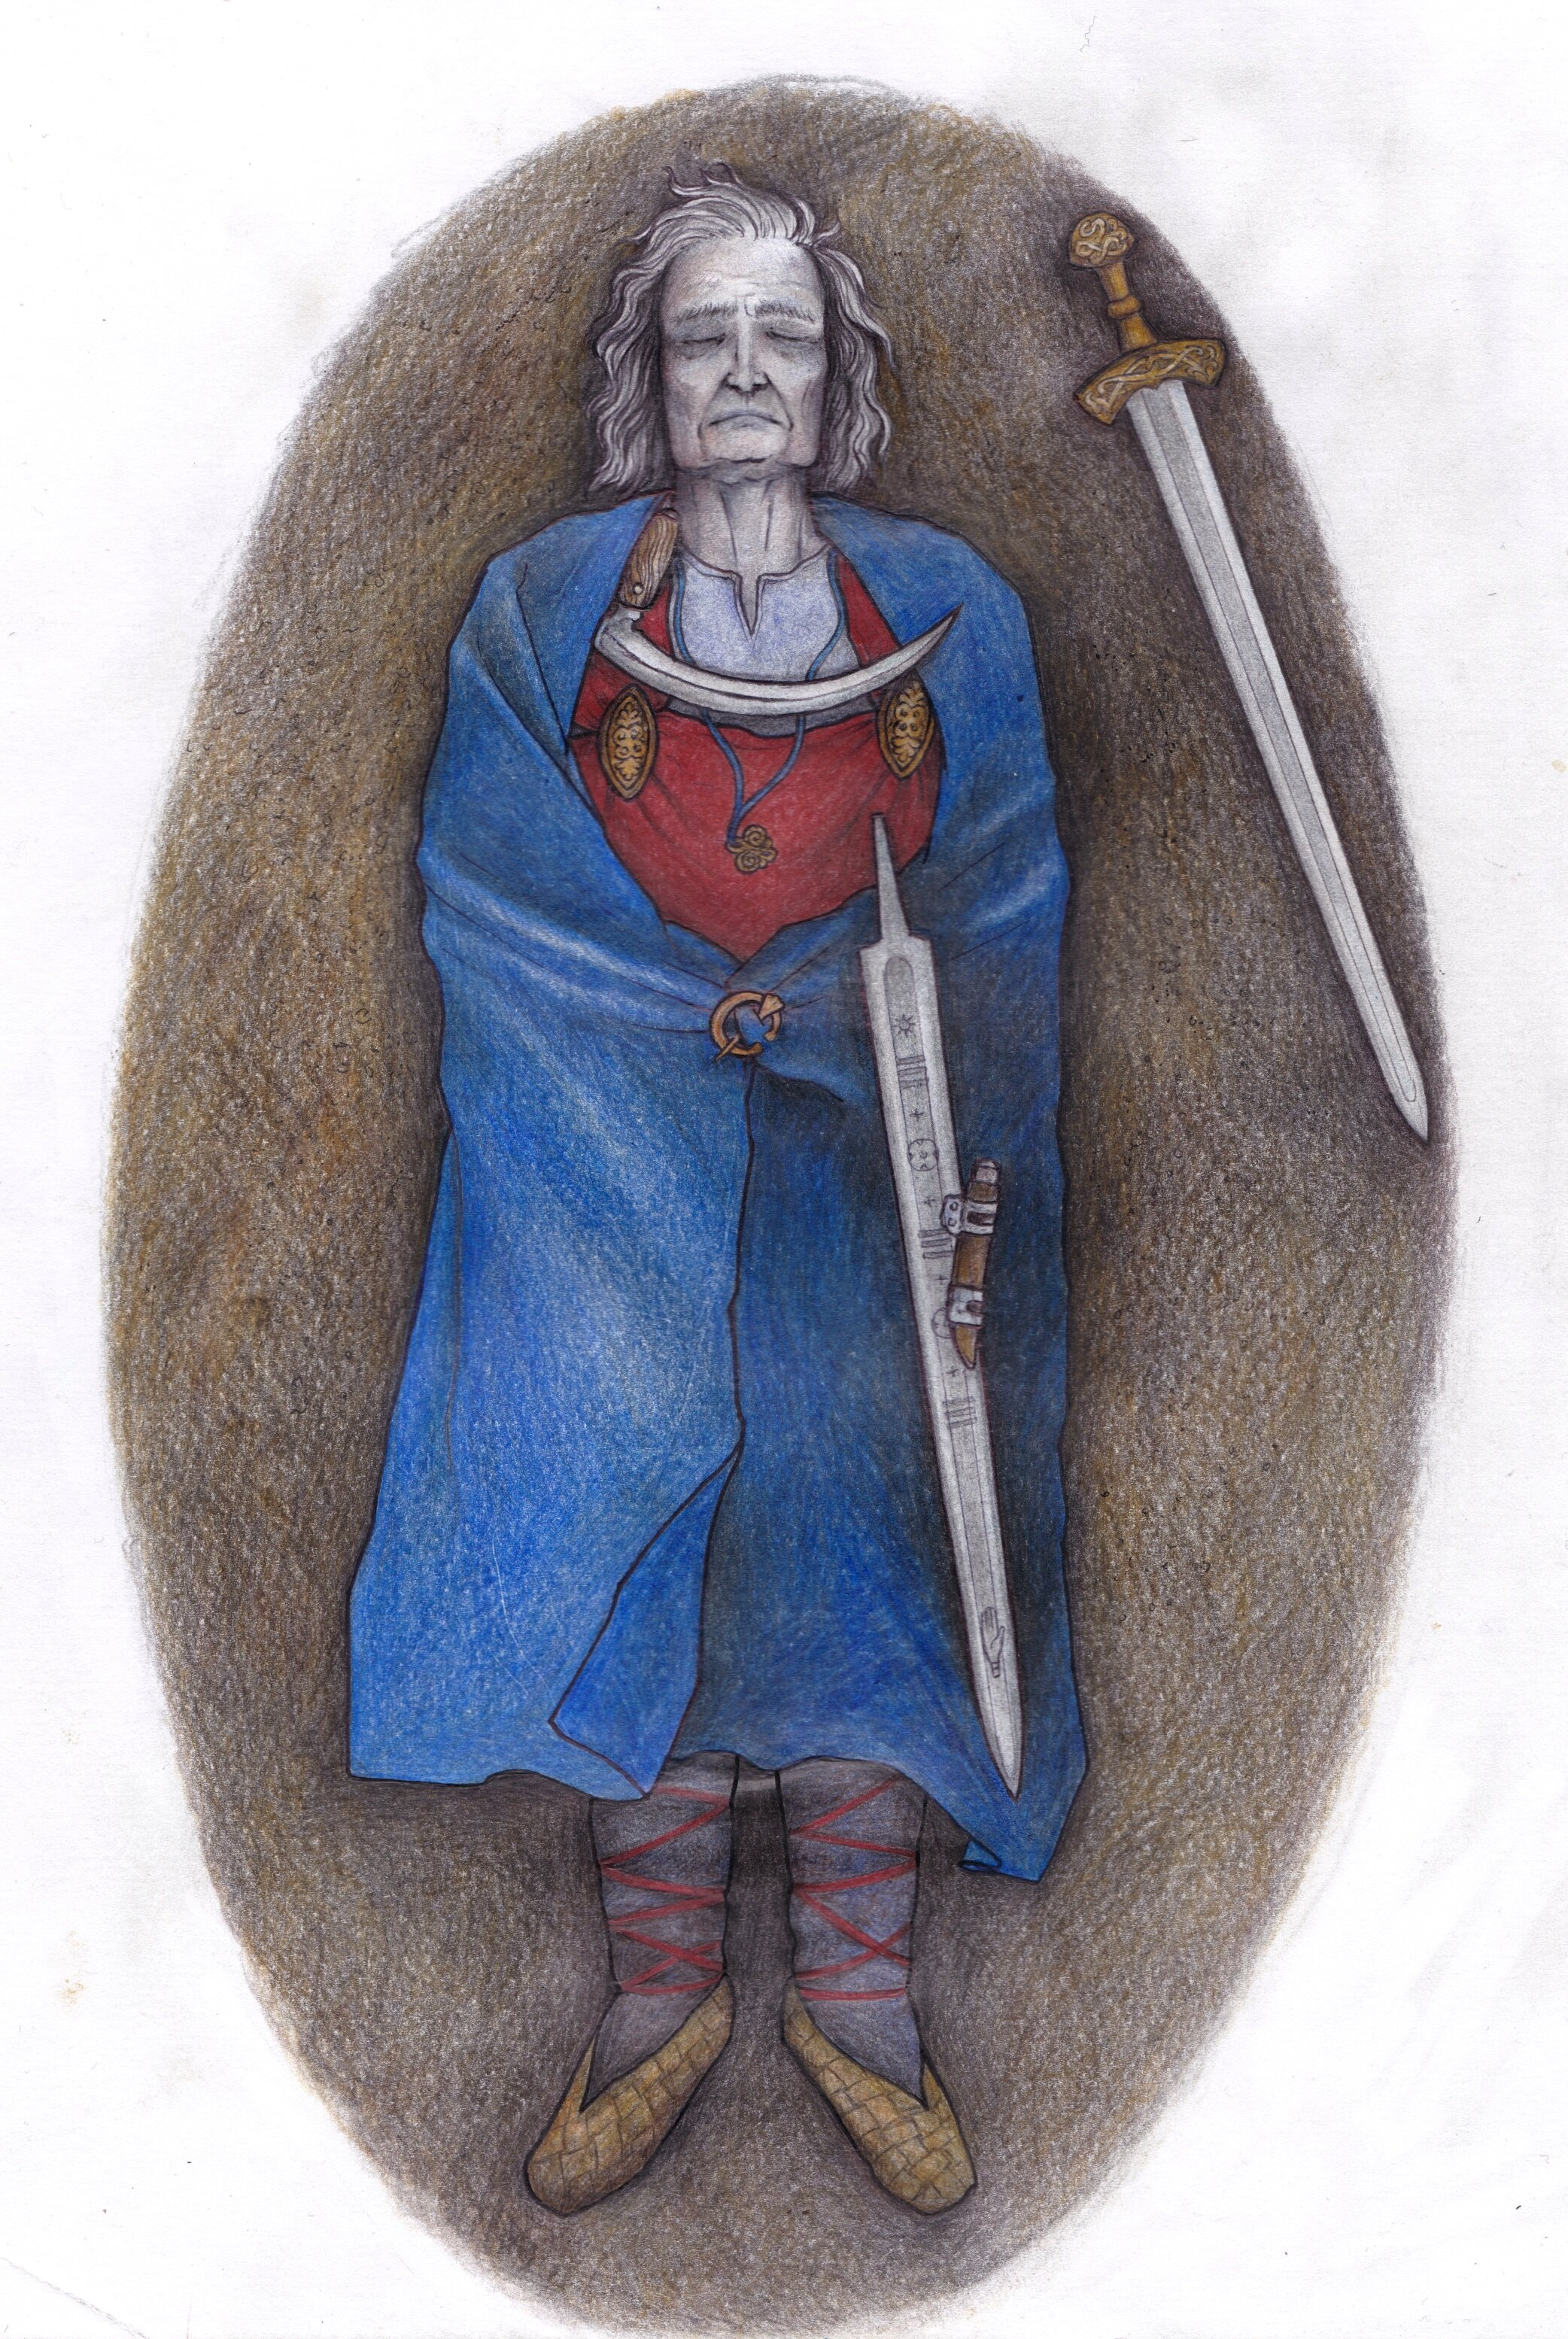 Weapon grave of Suontaka, Hattula in Finland reveals flexible gender roles in the early Middle Ages